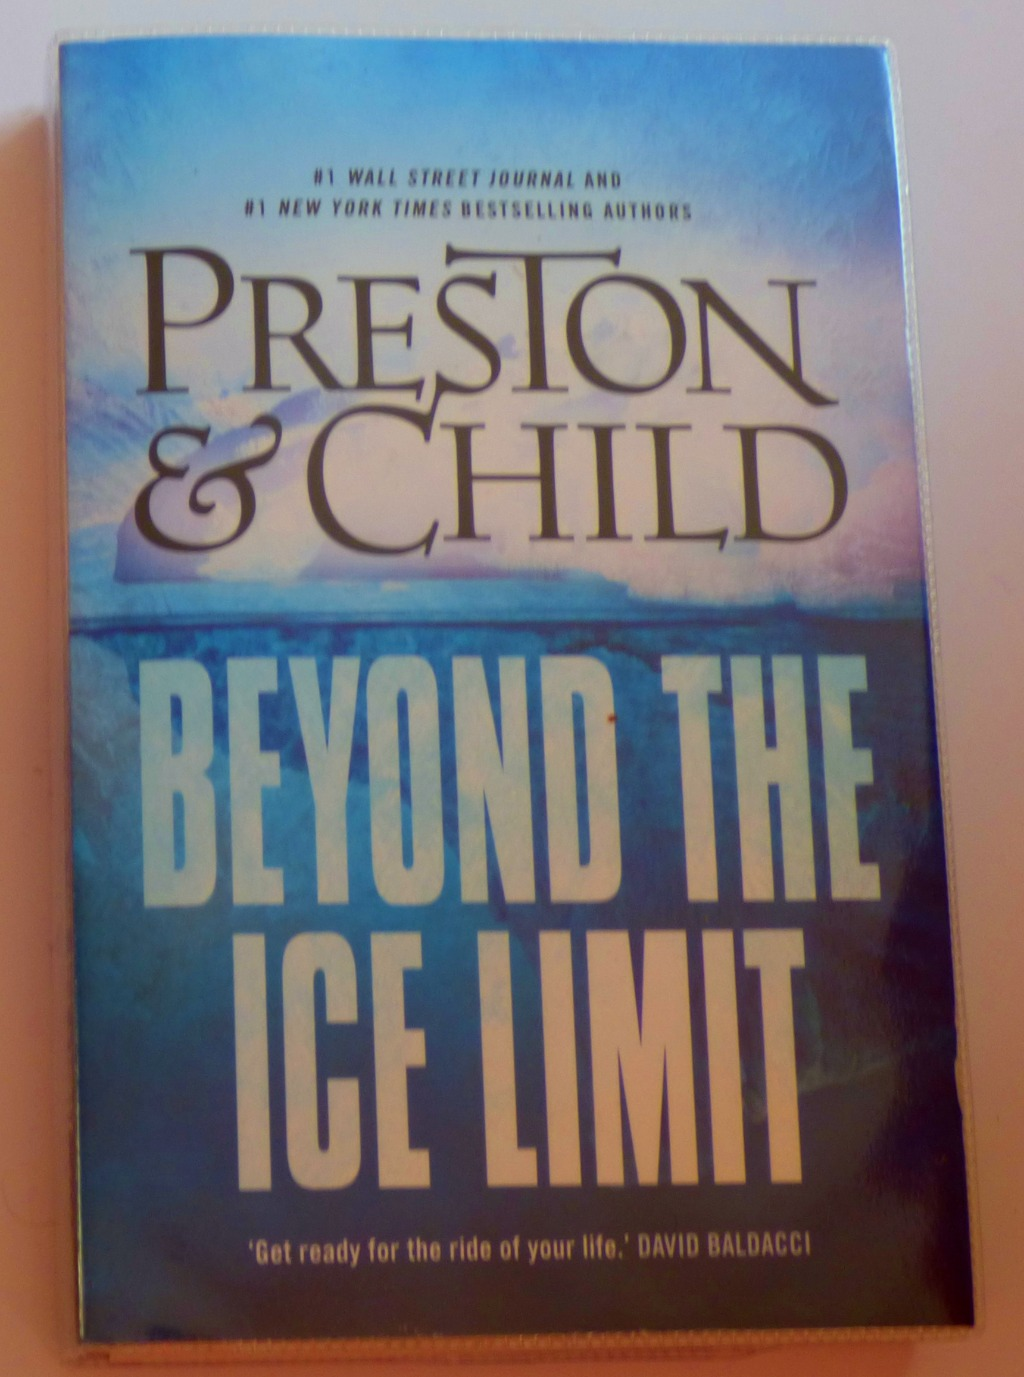 Beyond The Ice Limit (Book Review)